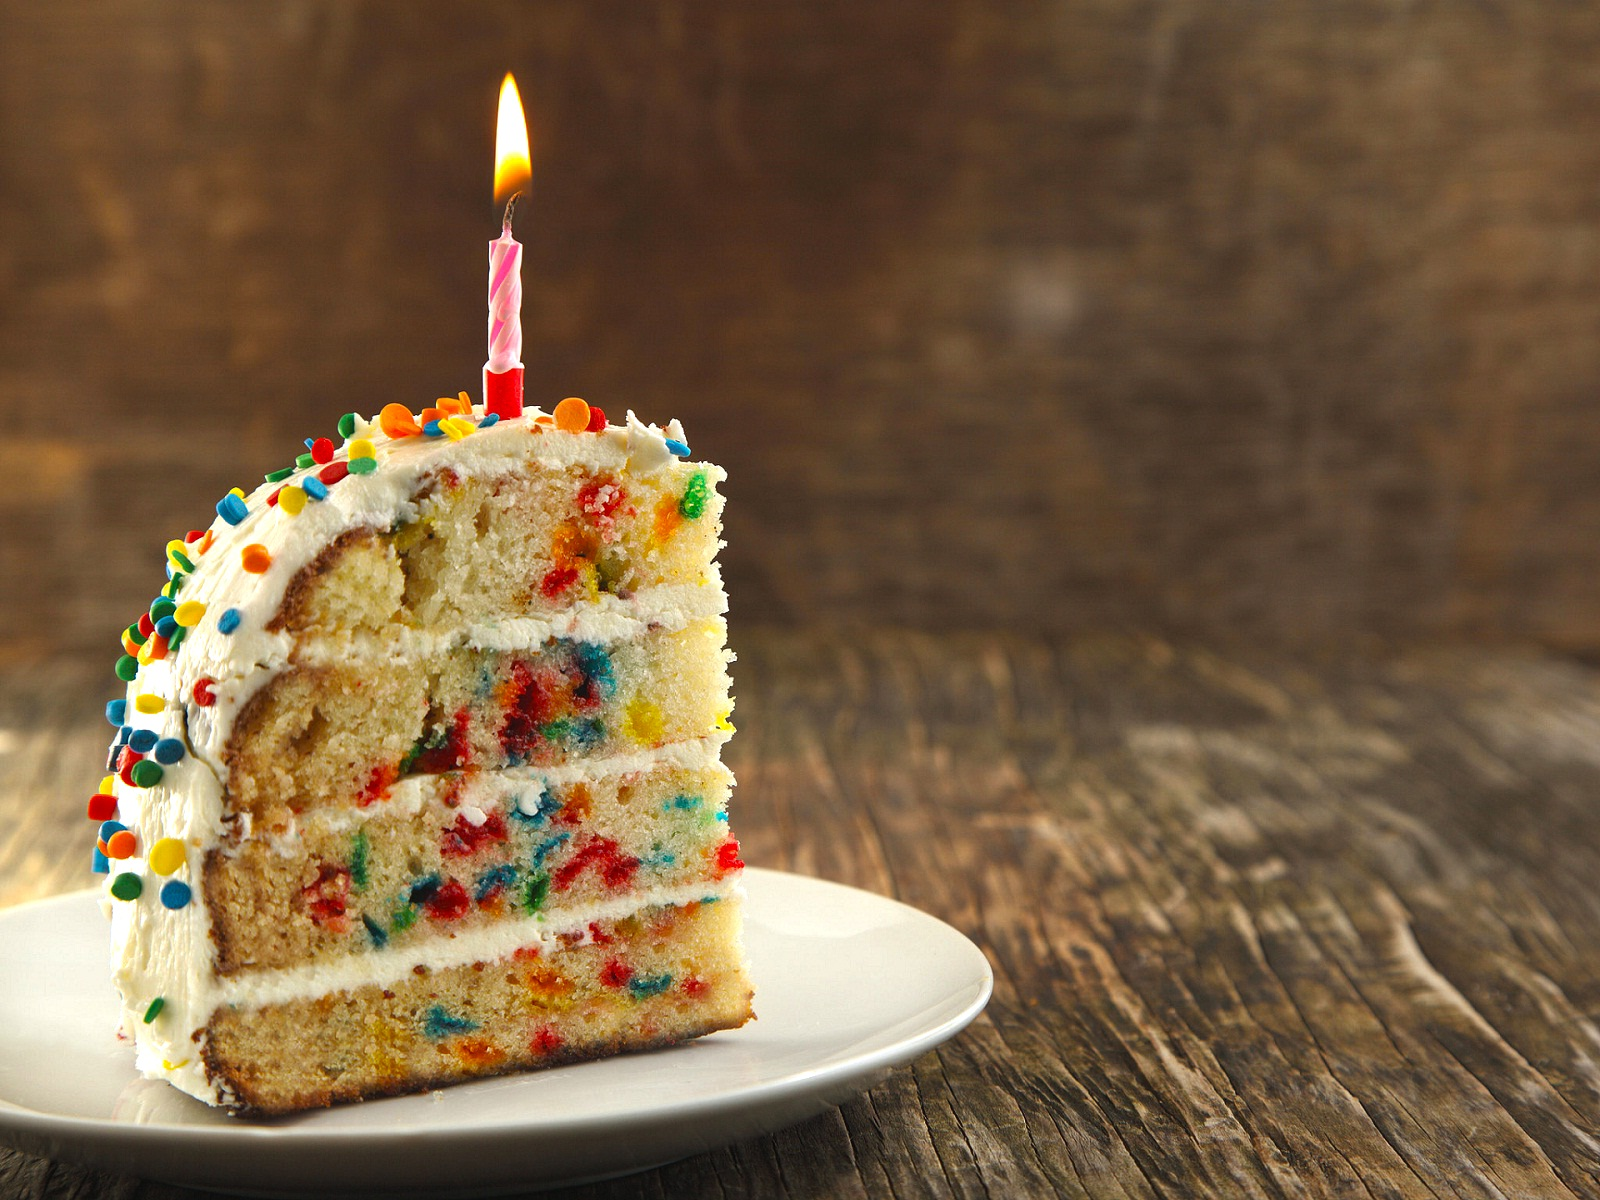 Birthday Cake Hd Images Editing : happy-birthday-cake-hd-wallpaper - The Resilience Post